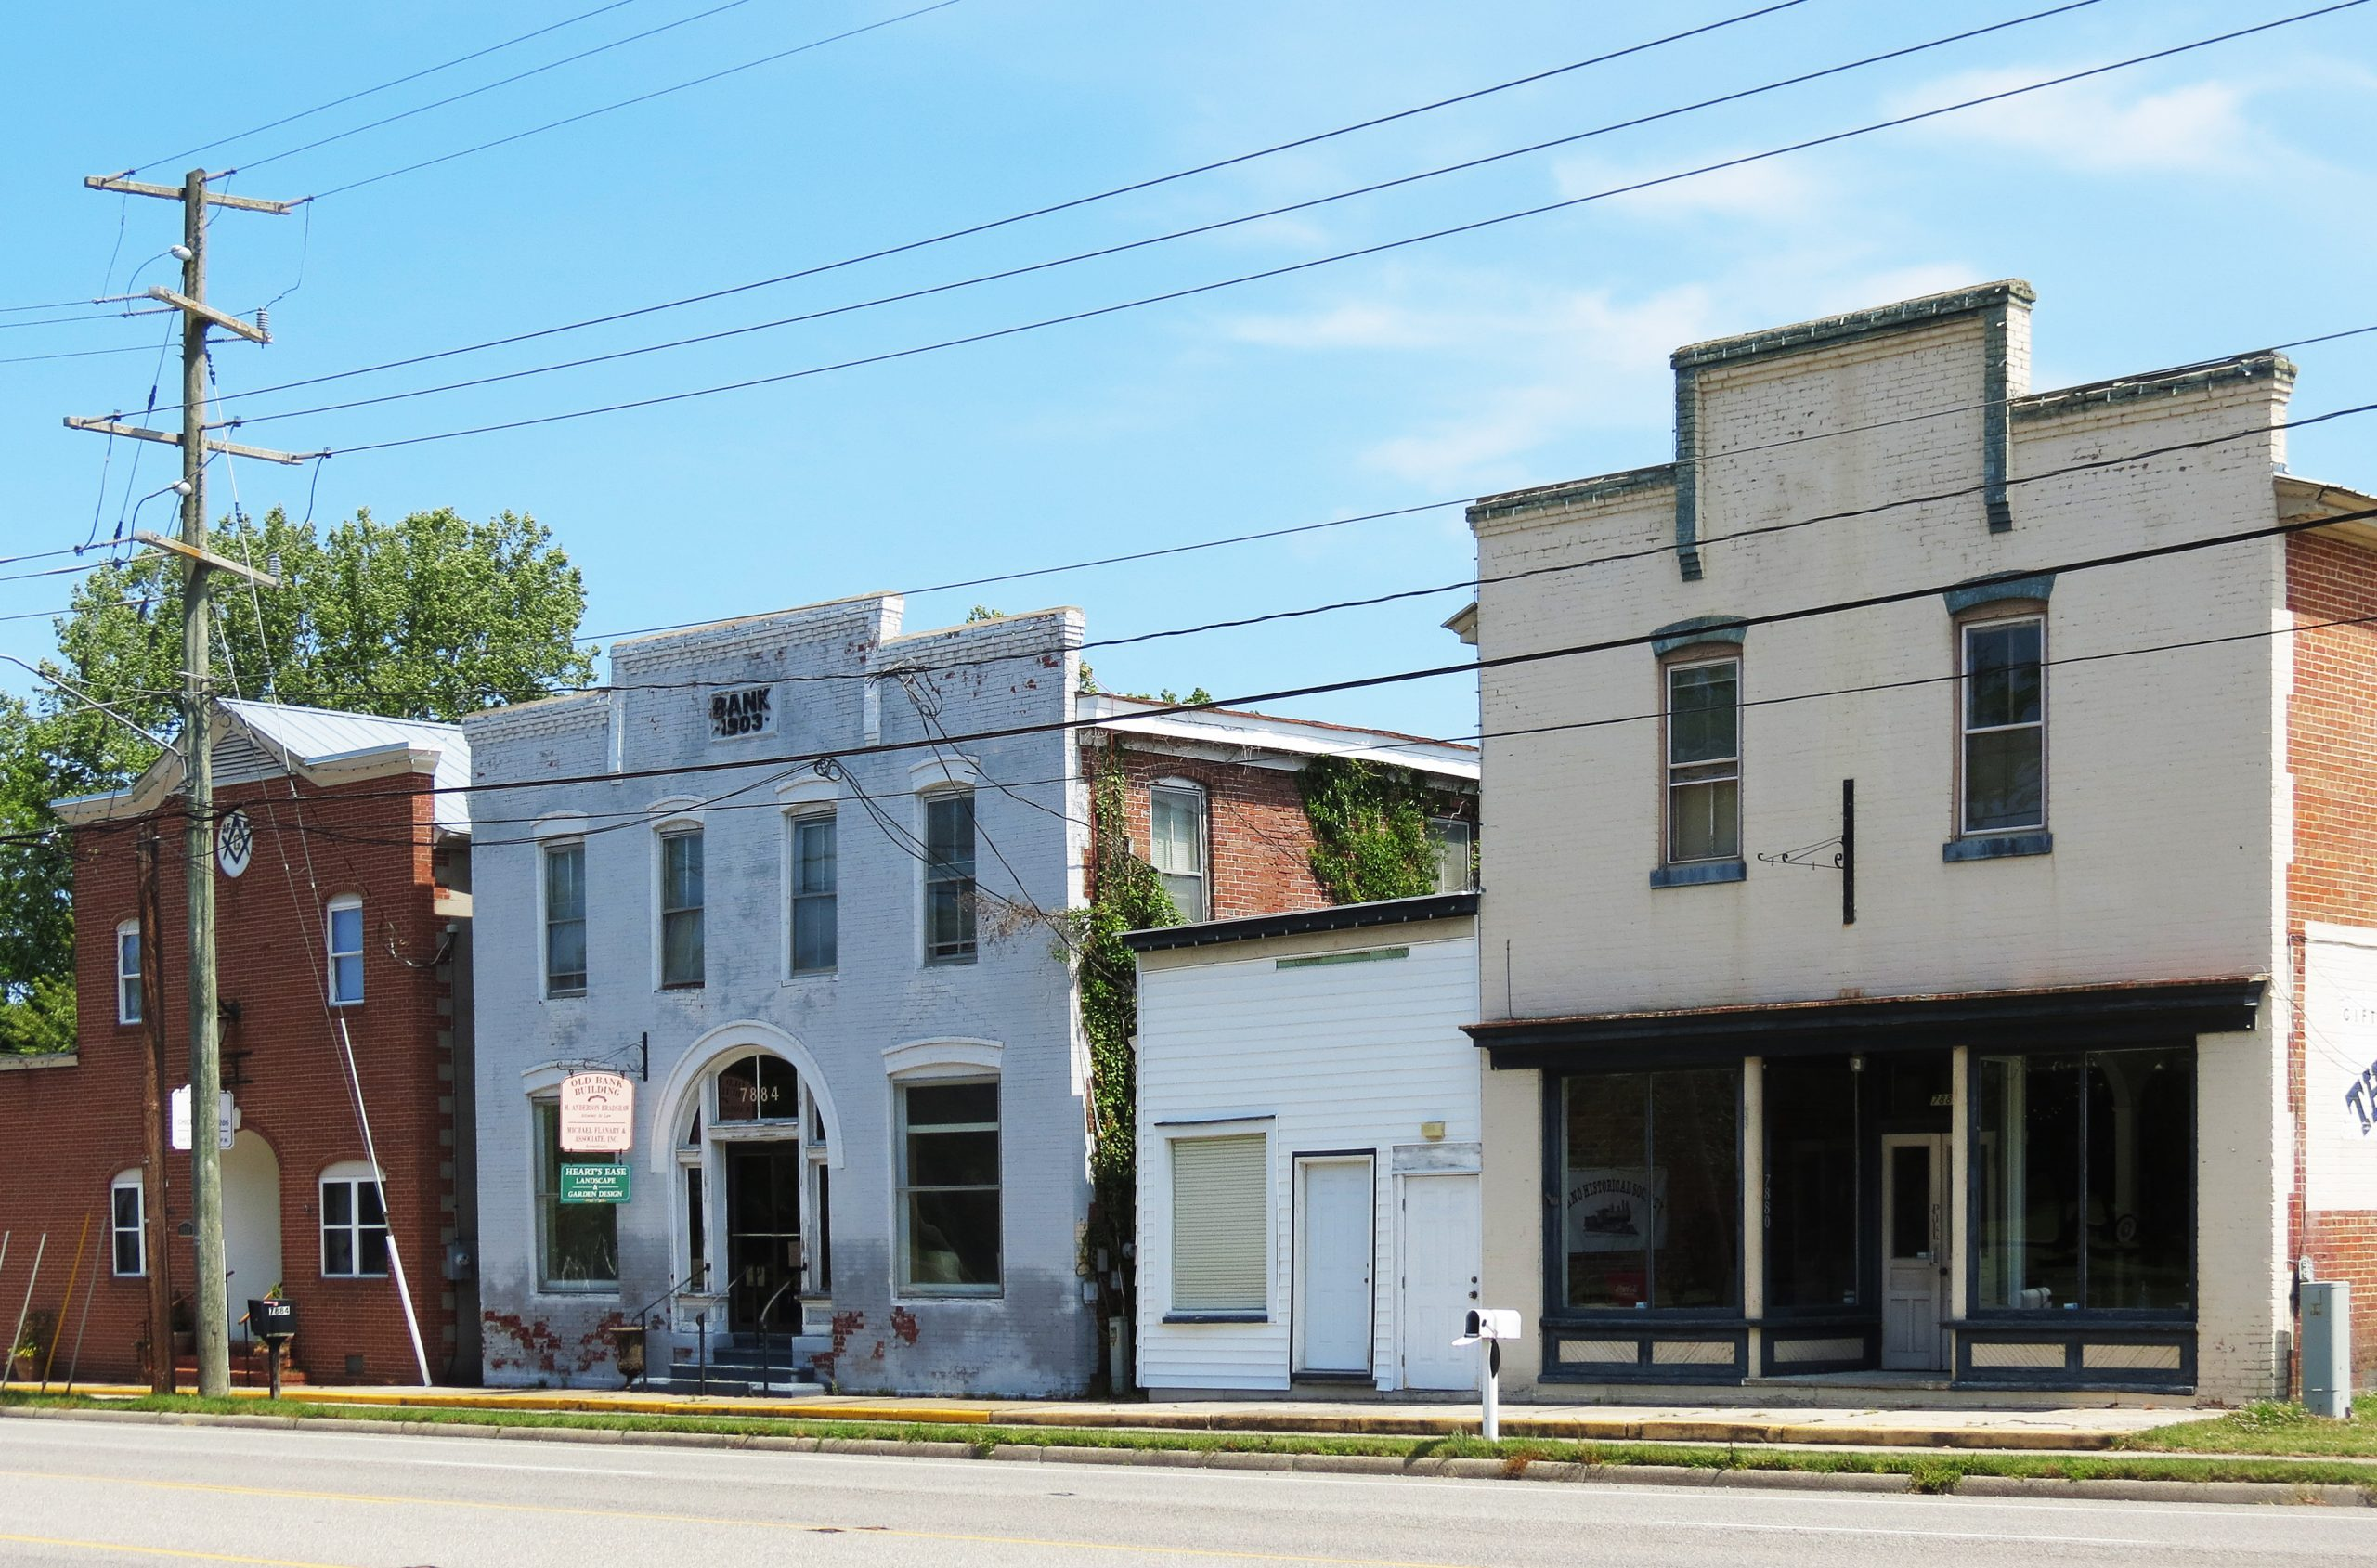 Toano Commercial Historic District